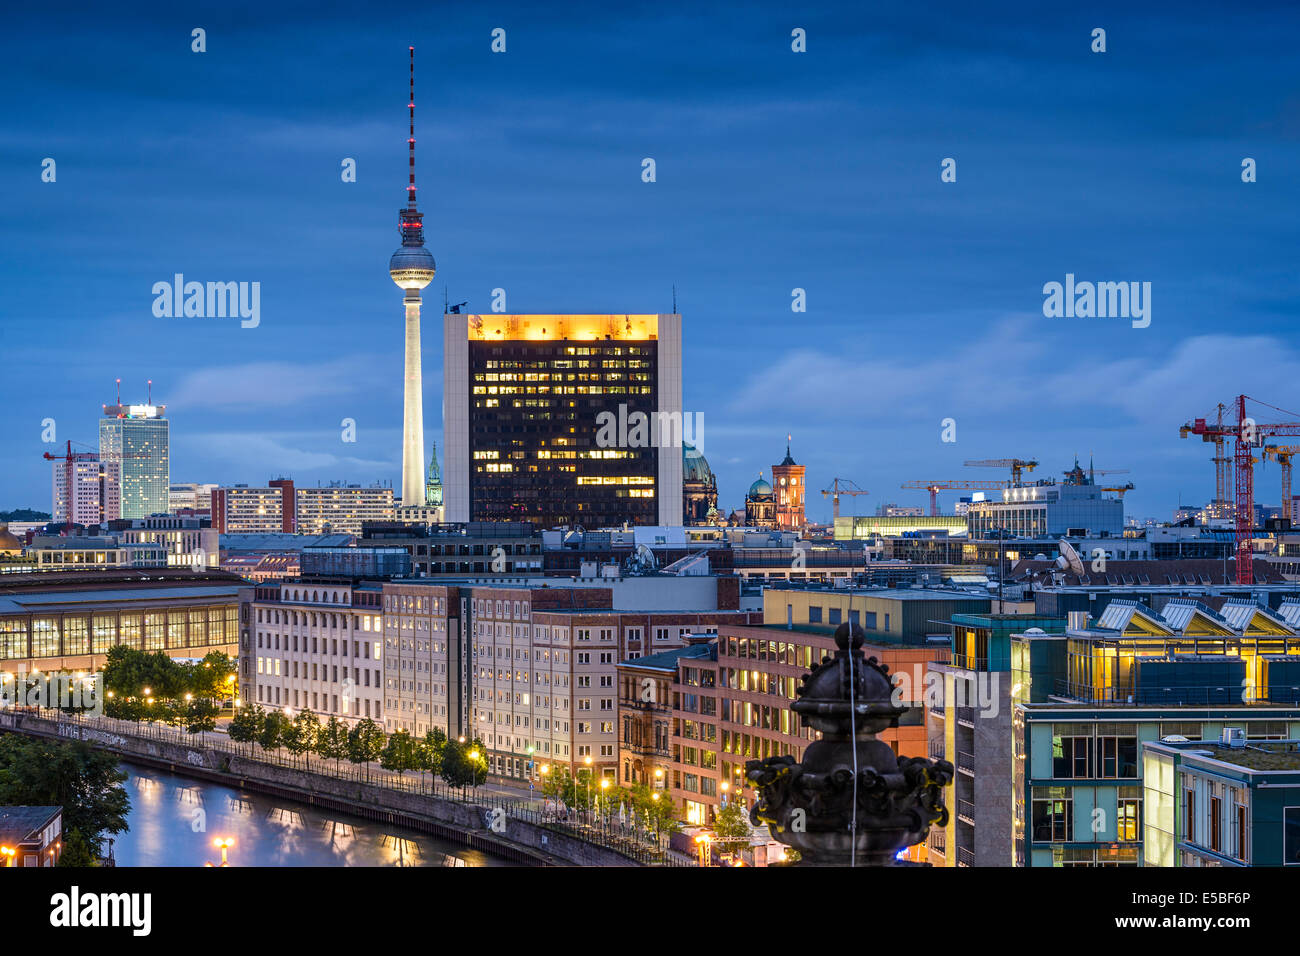 Berlin, Germany city skyline at night. - Stock Image